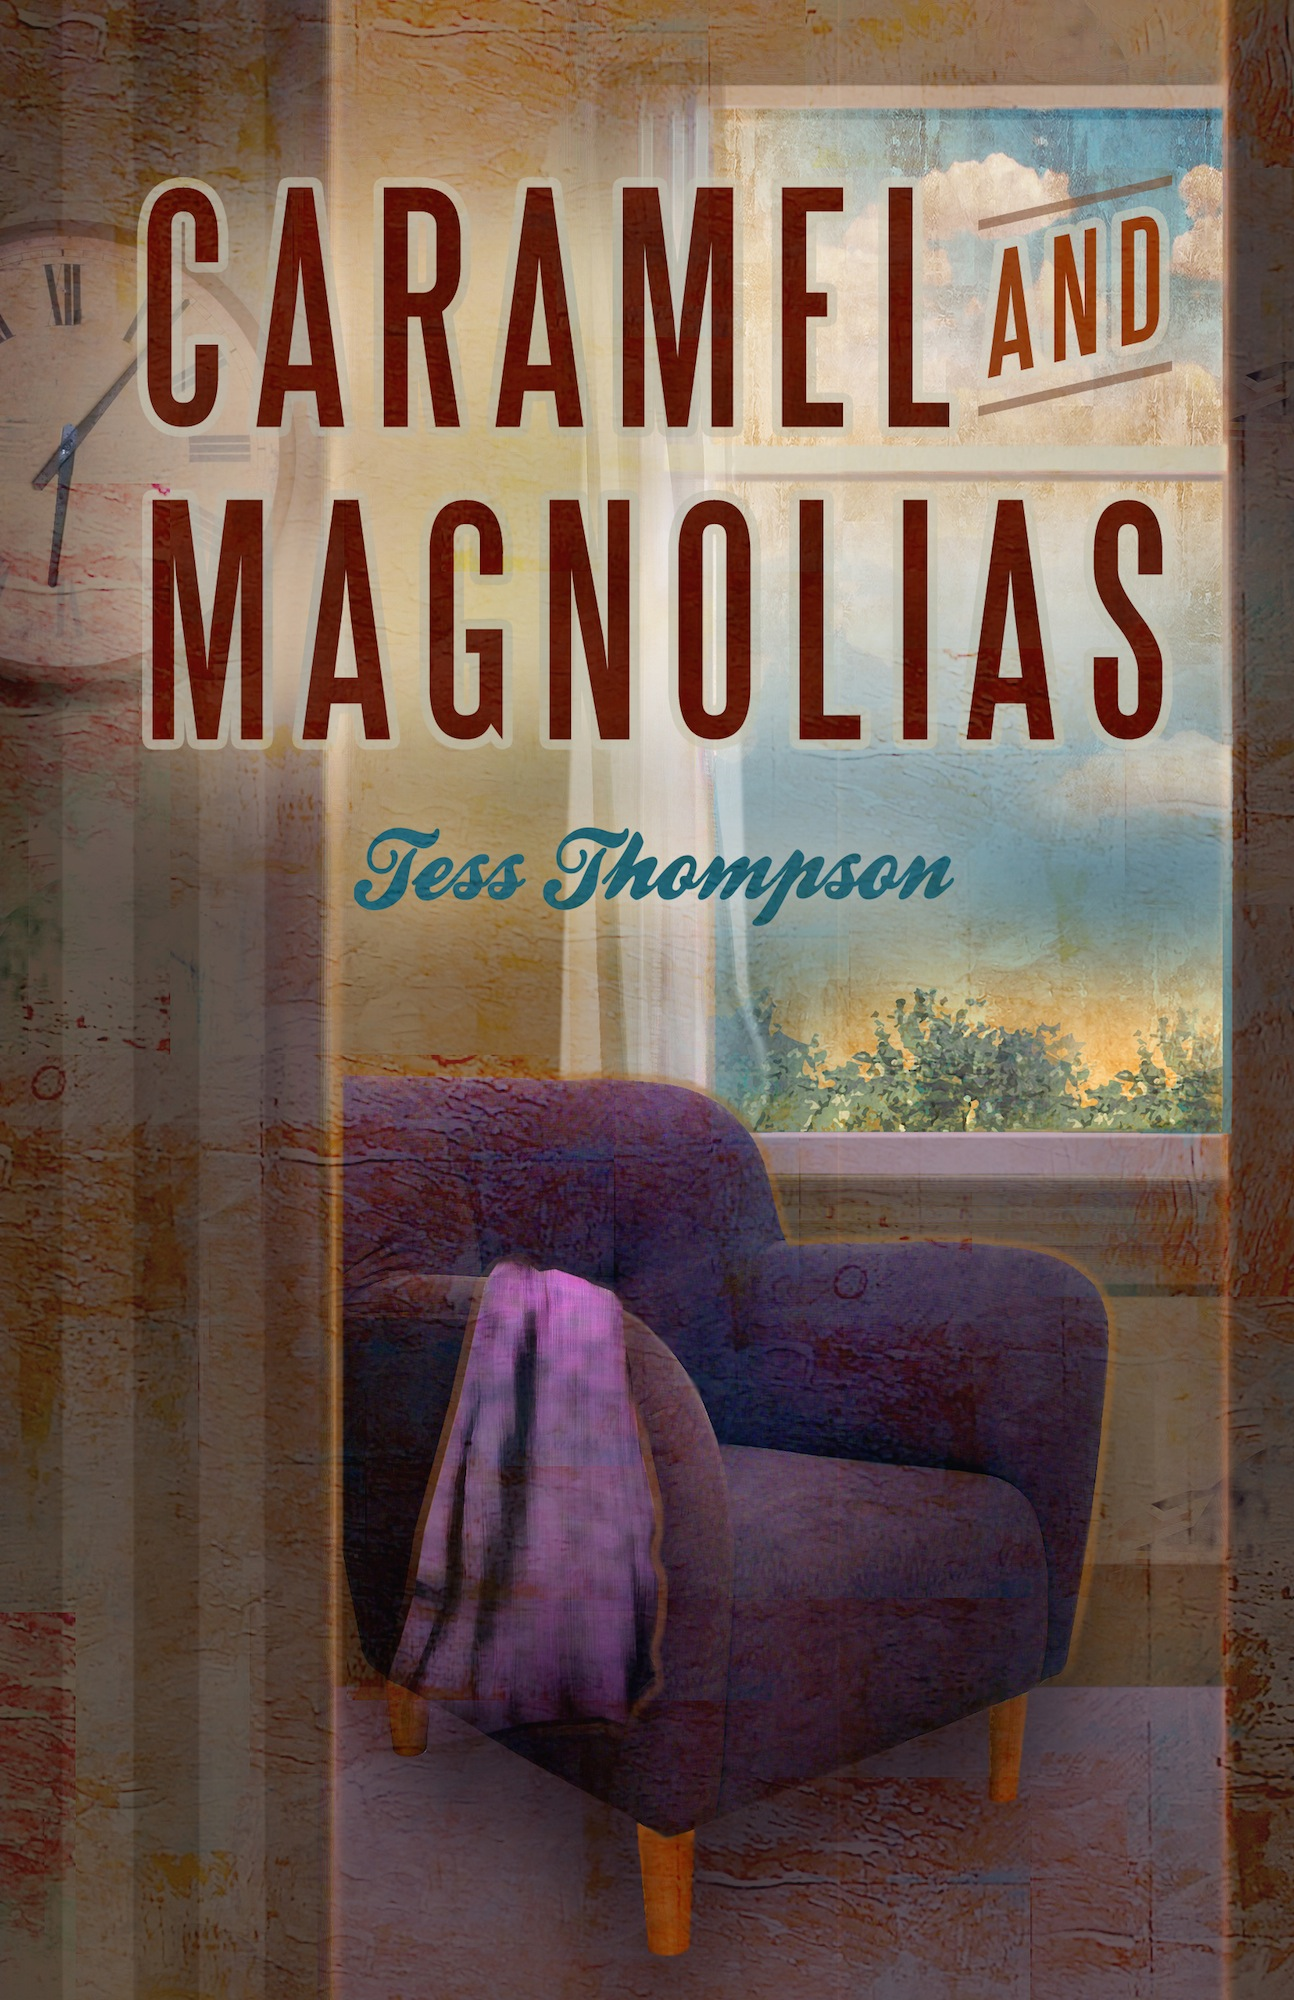 Caramel and Magnolias